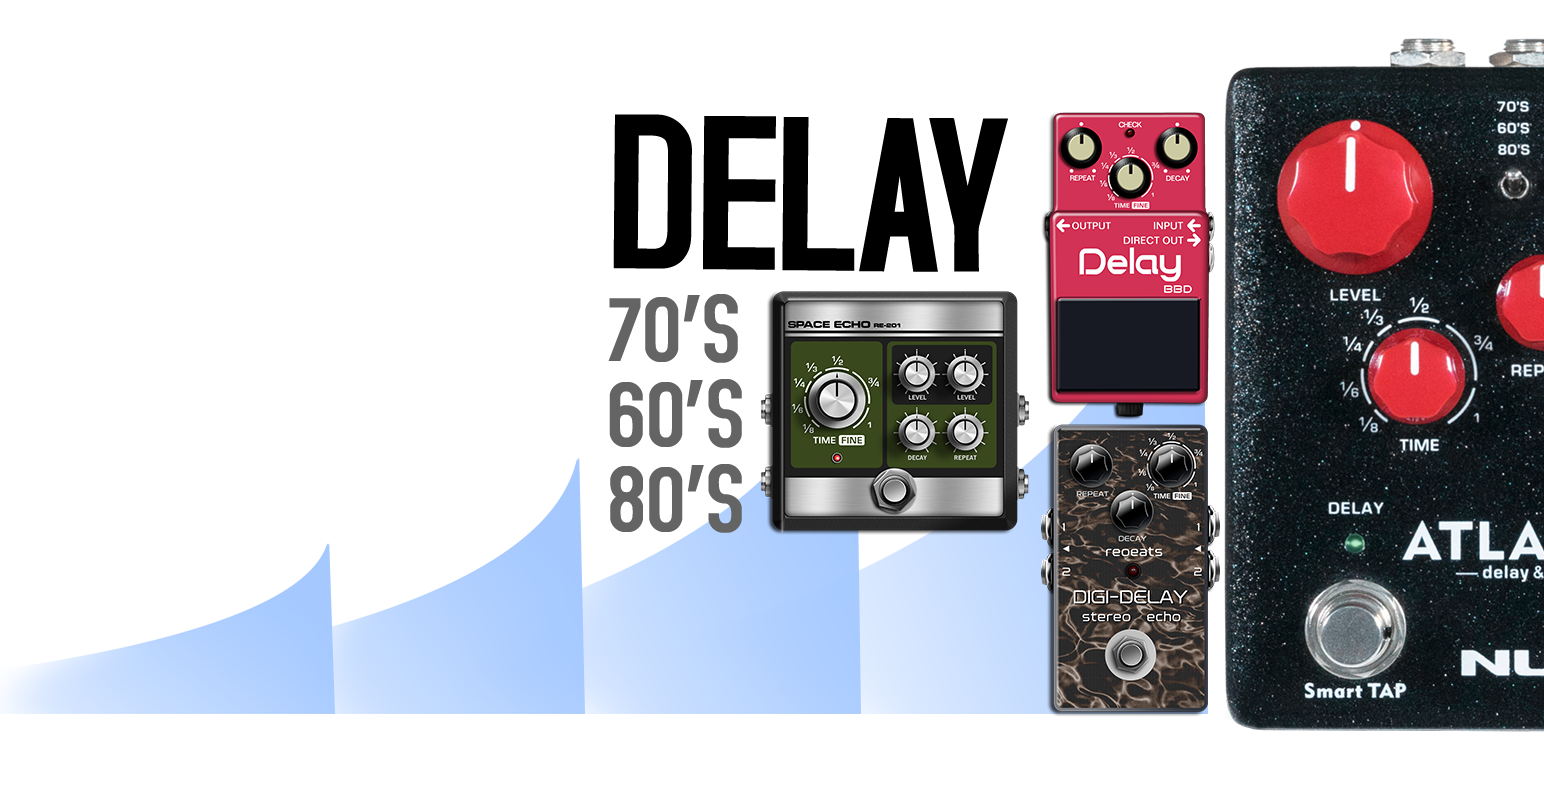 NUX Atlantic delay & reverb NDR-5 delay modi